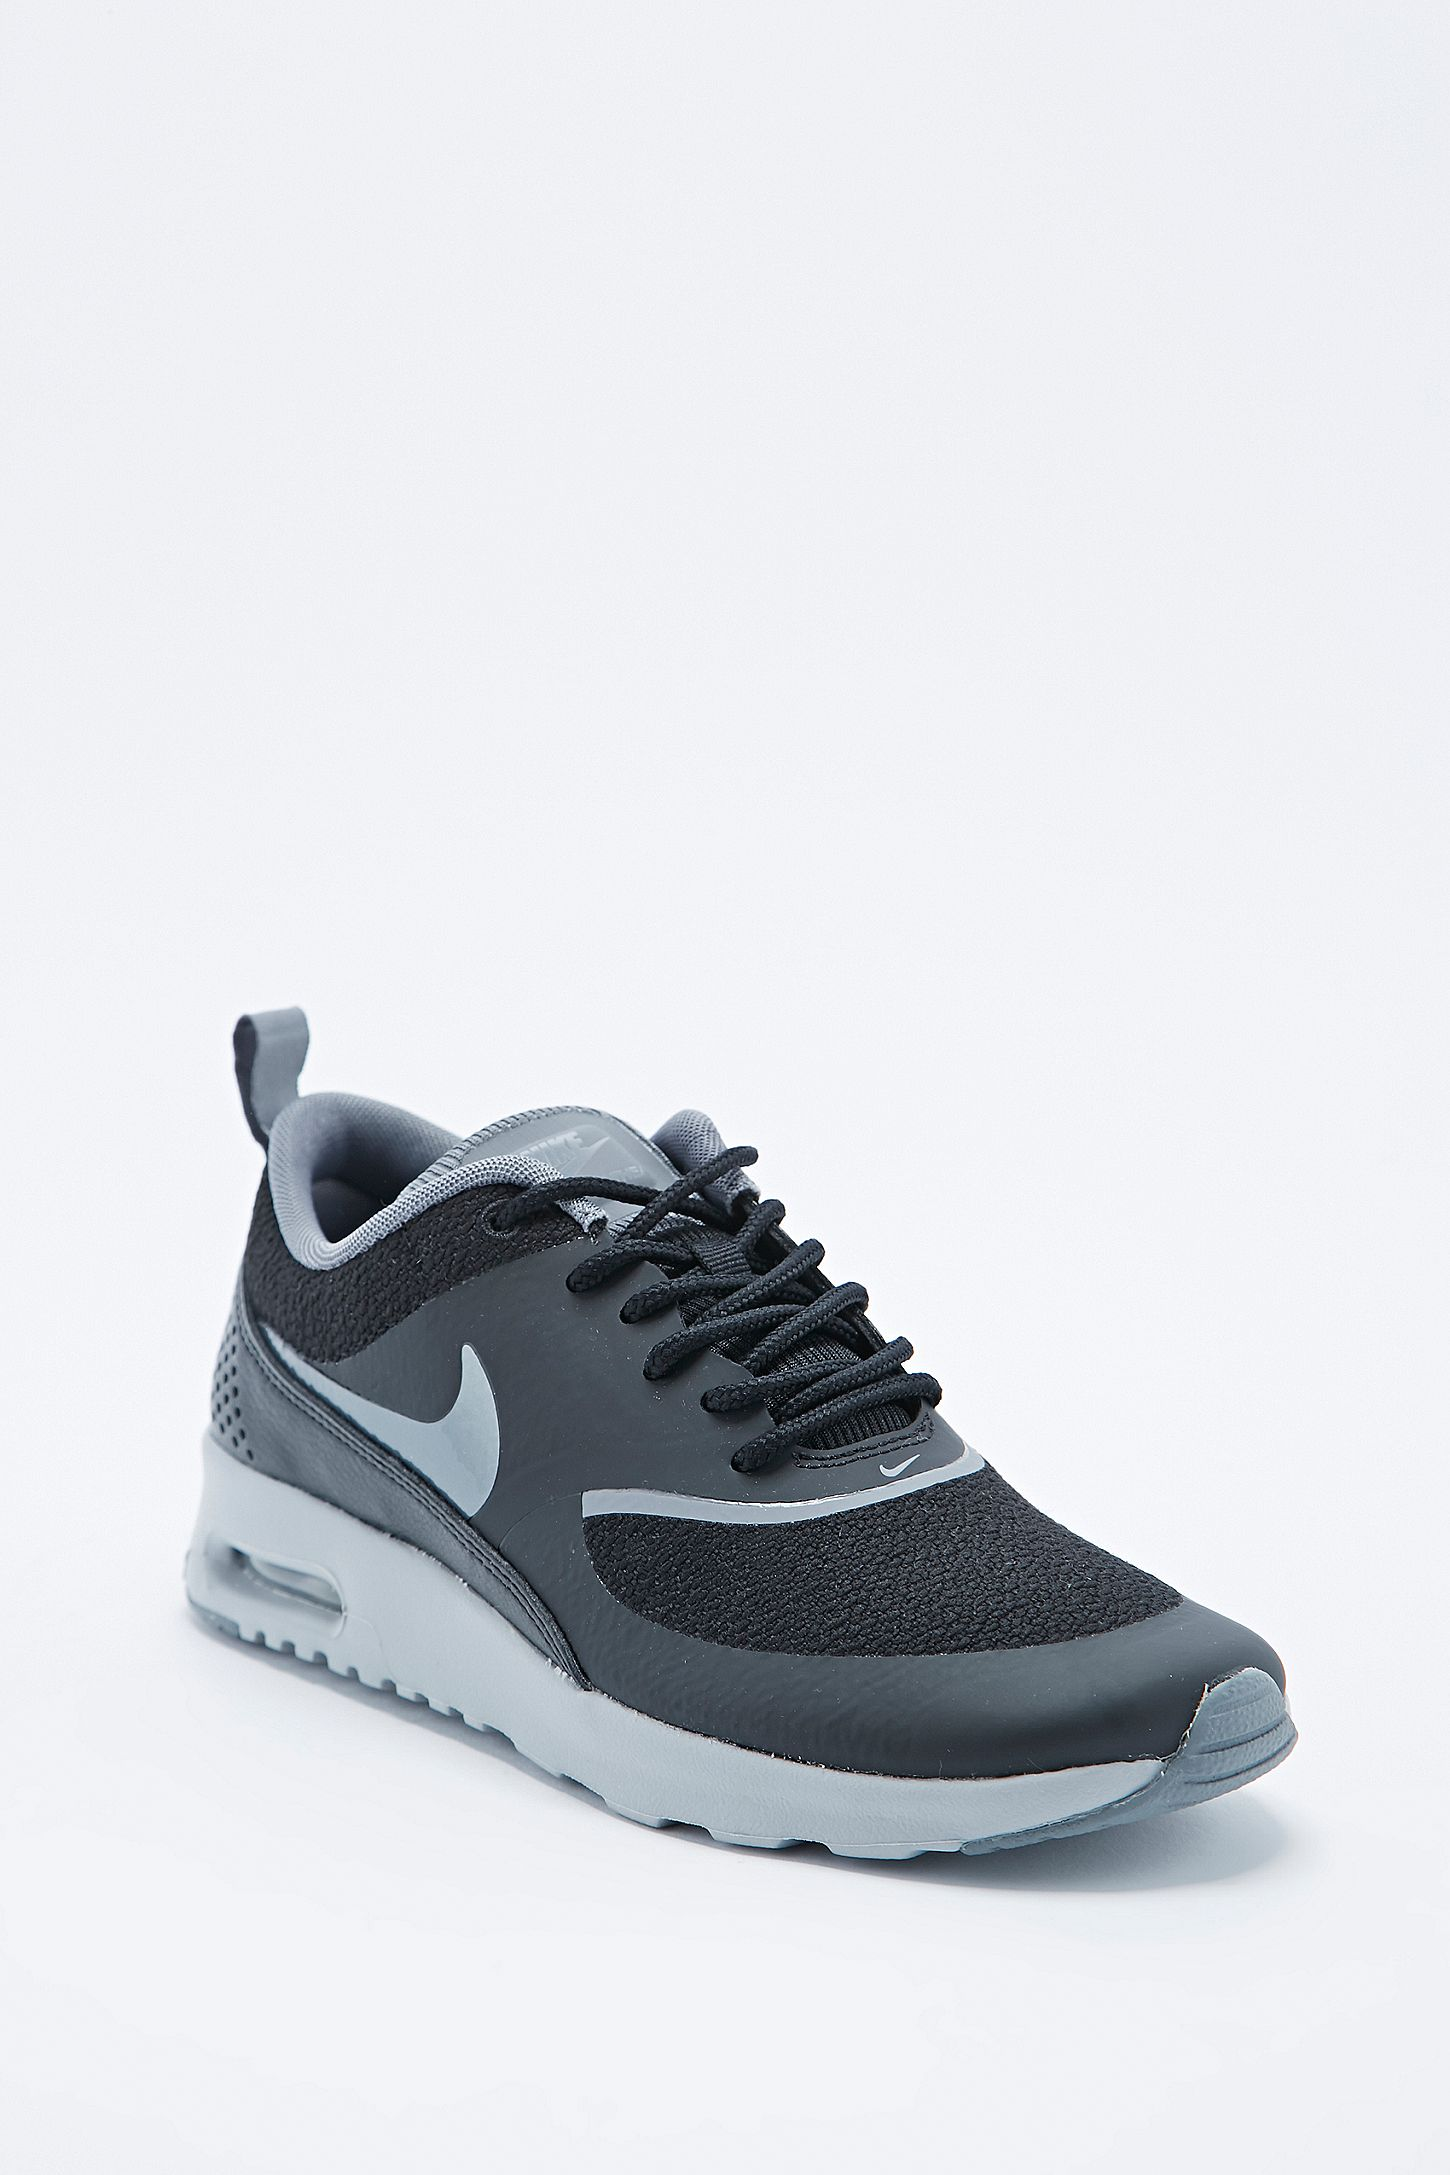 b5eed8f9bdcf Nike Air Max Thea Trainers in Black and Silver